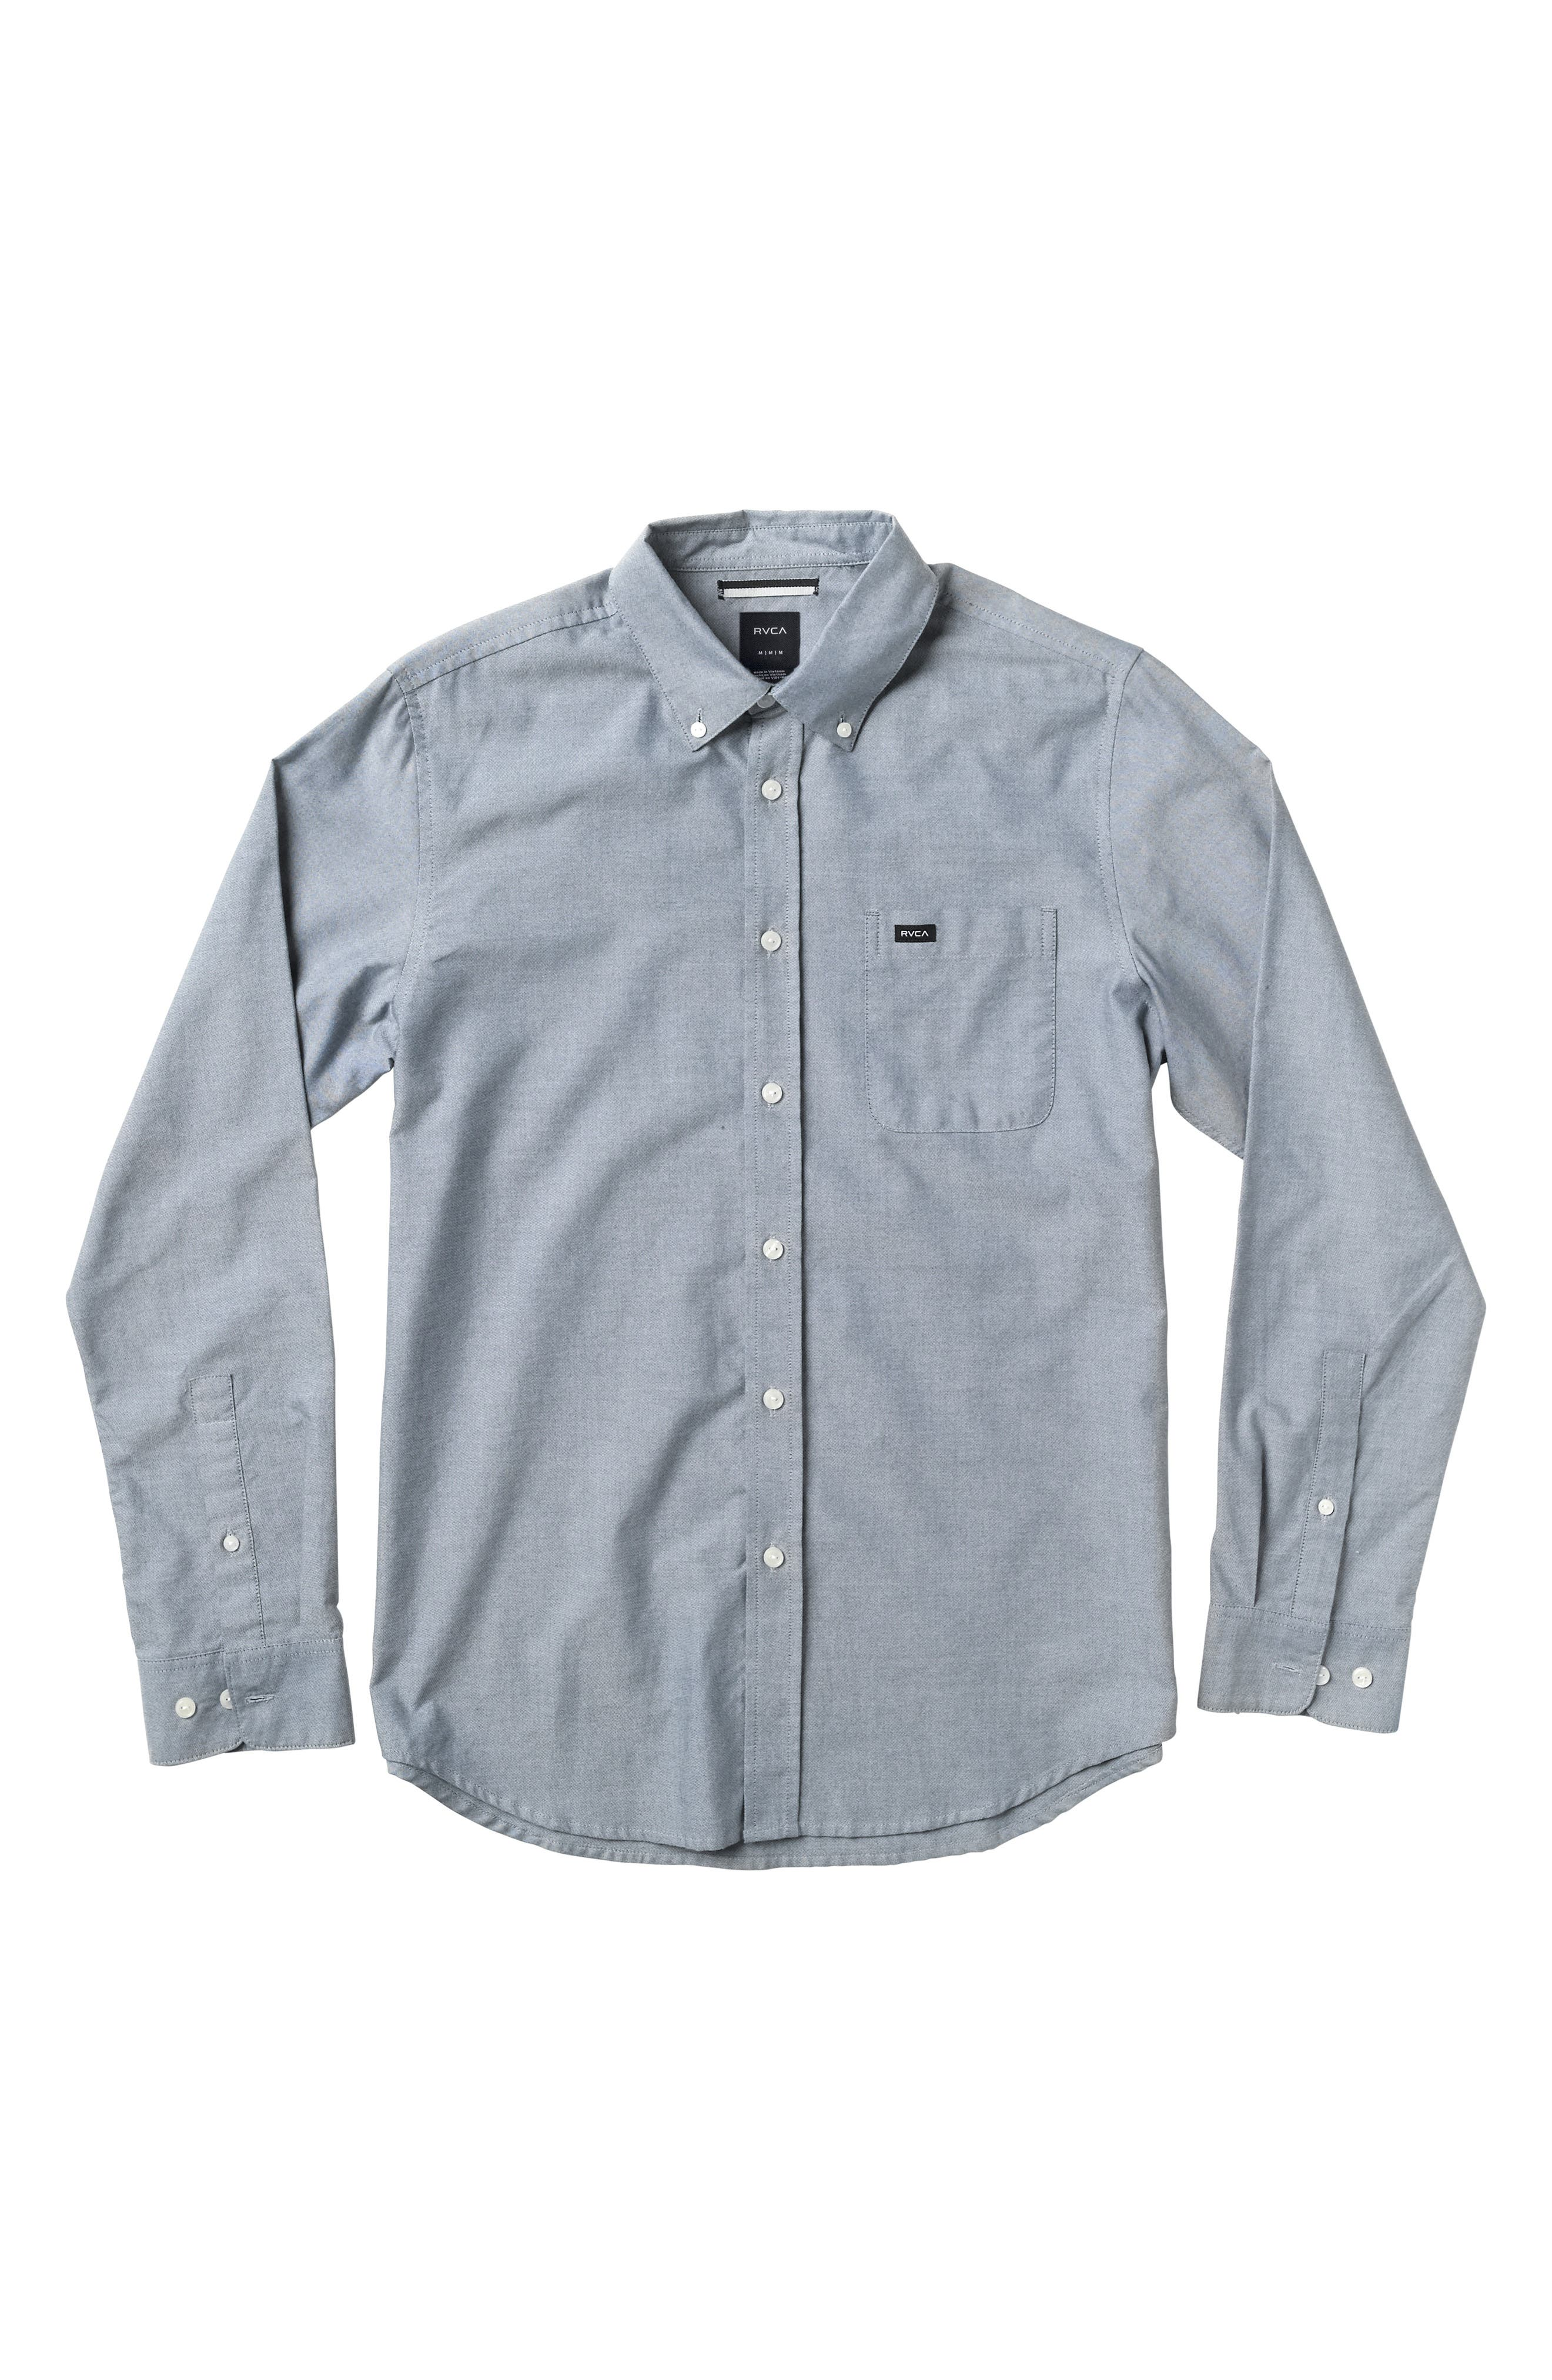 0532bb3dd6e RVCA WoMen s Casual Button-Down Shirts   Men s Casual Button-Down Shirts  Clothing   Accessories